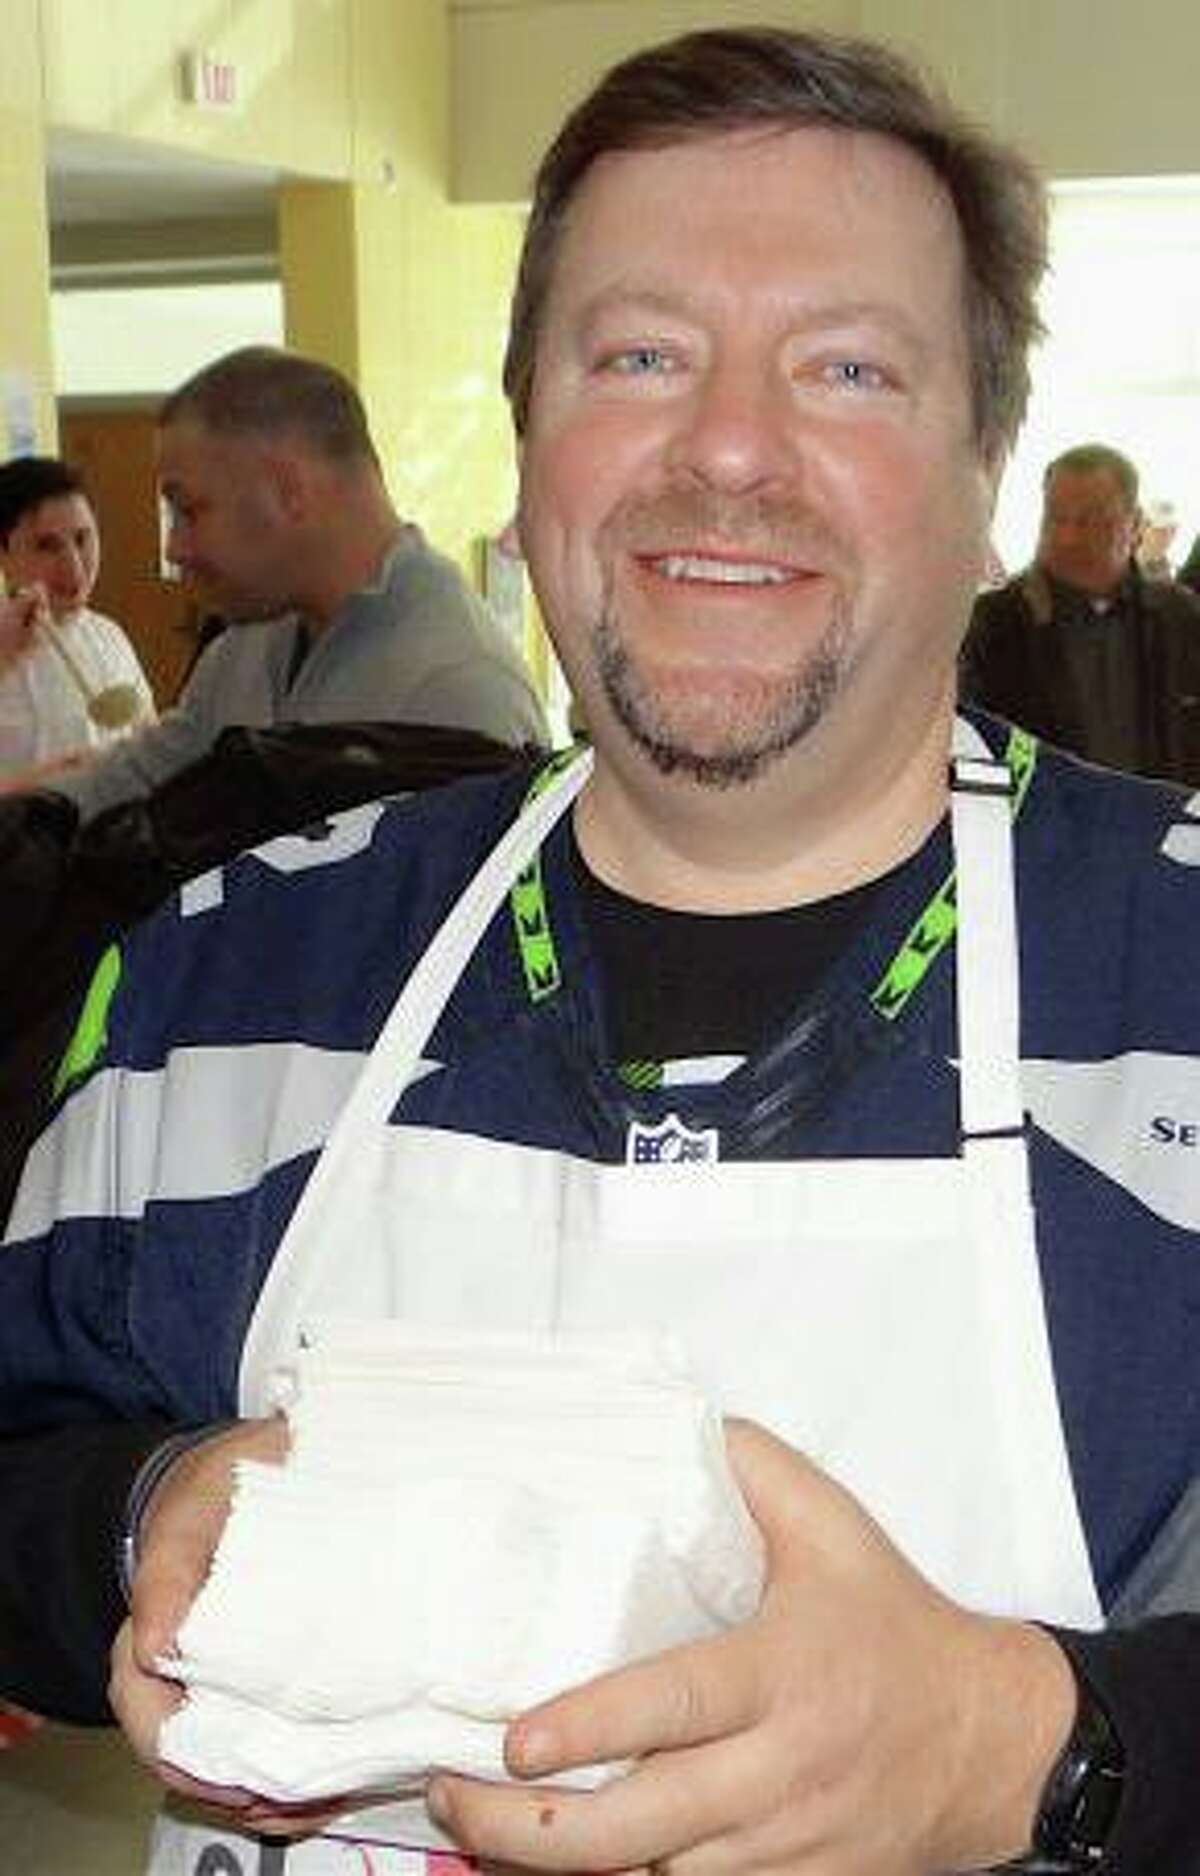 Jim Keenan, seen here in 2015, died on Dec. 23, 2020. A Norwalk, Conn. resident, Keenan founded the popular regional chowder competitions